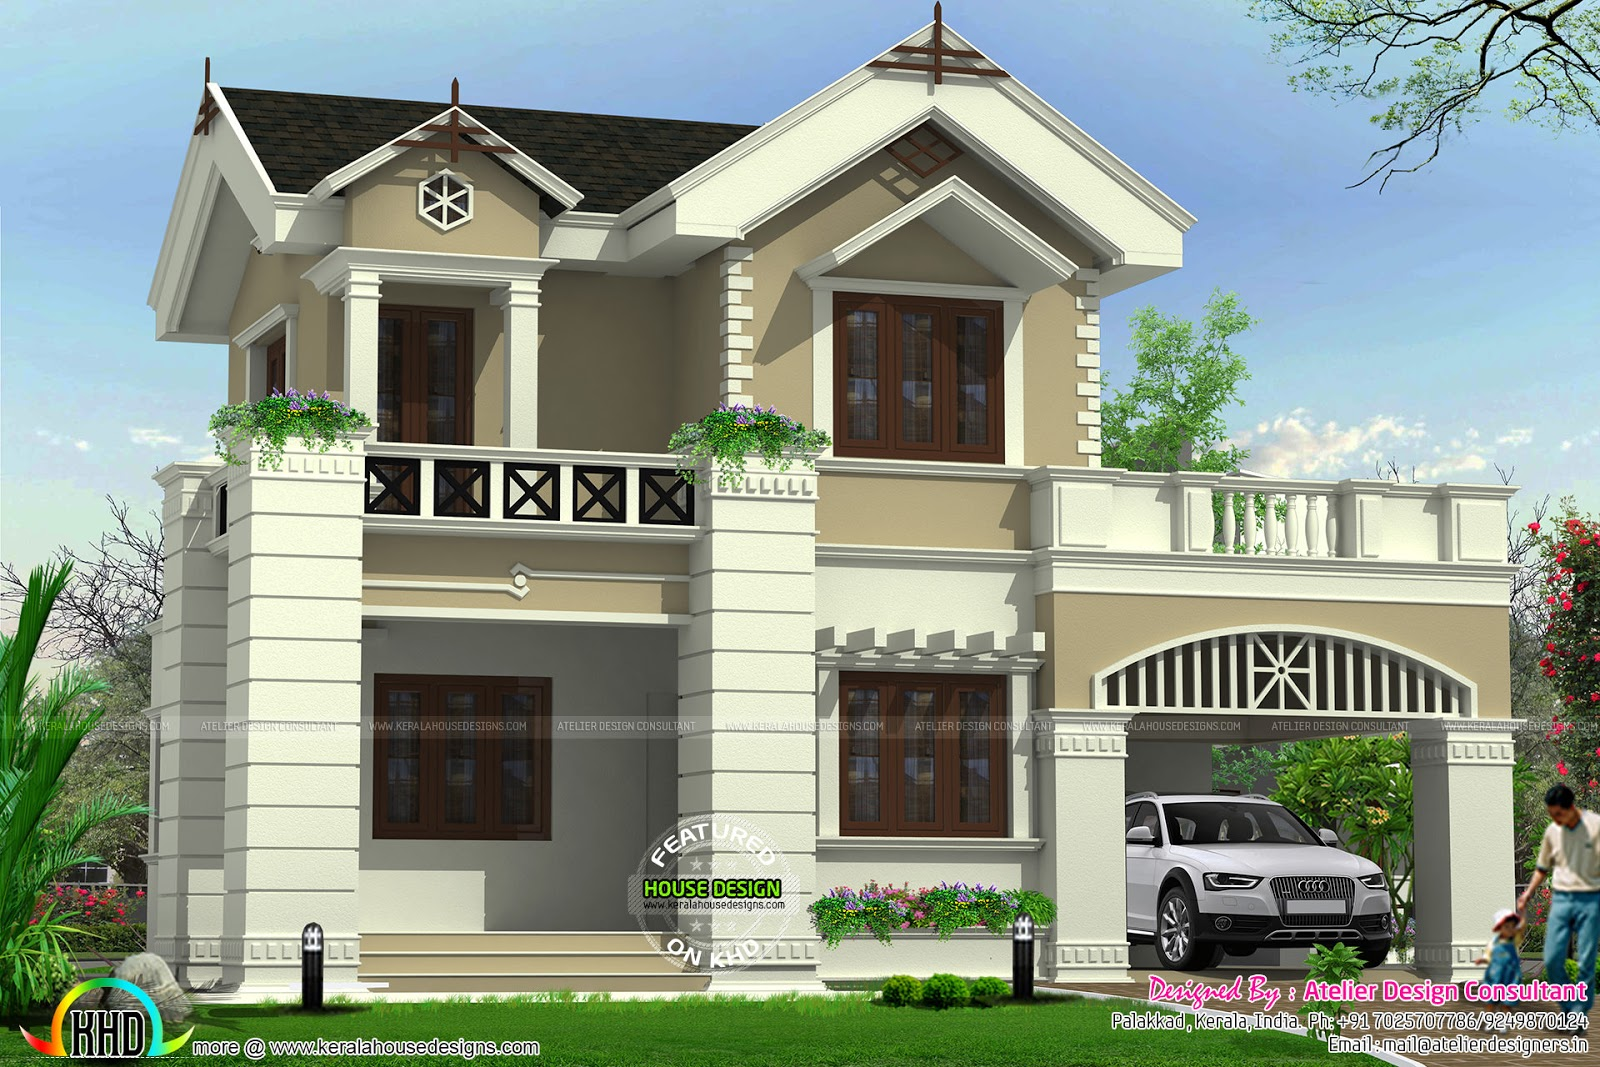 Cute victorian model home kerala home design and floor plans for Cute house design